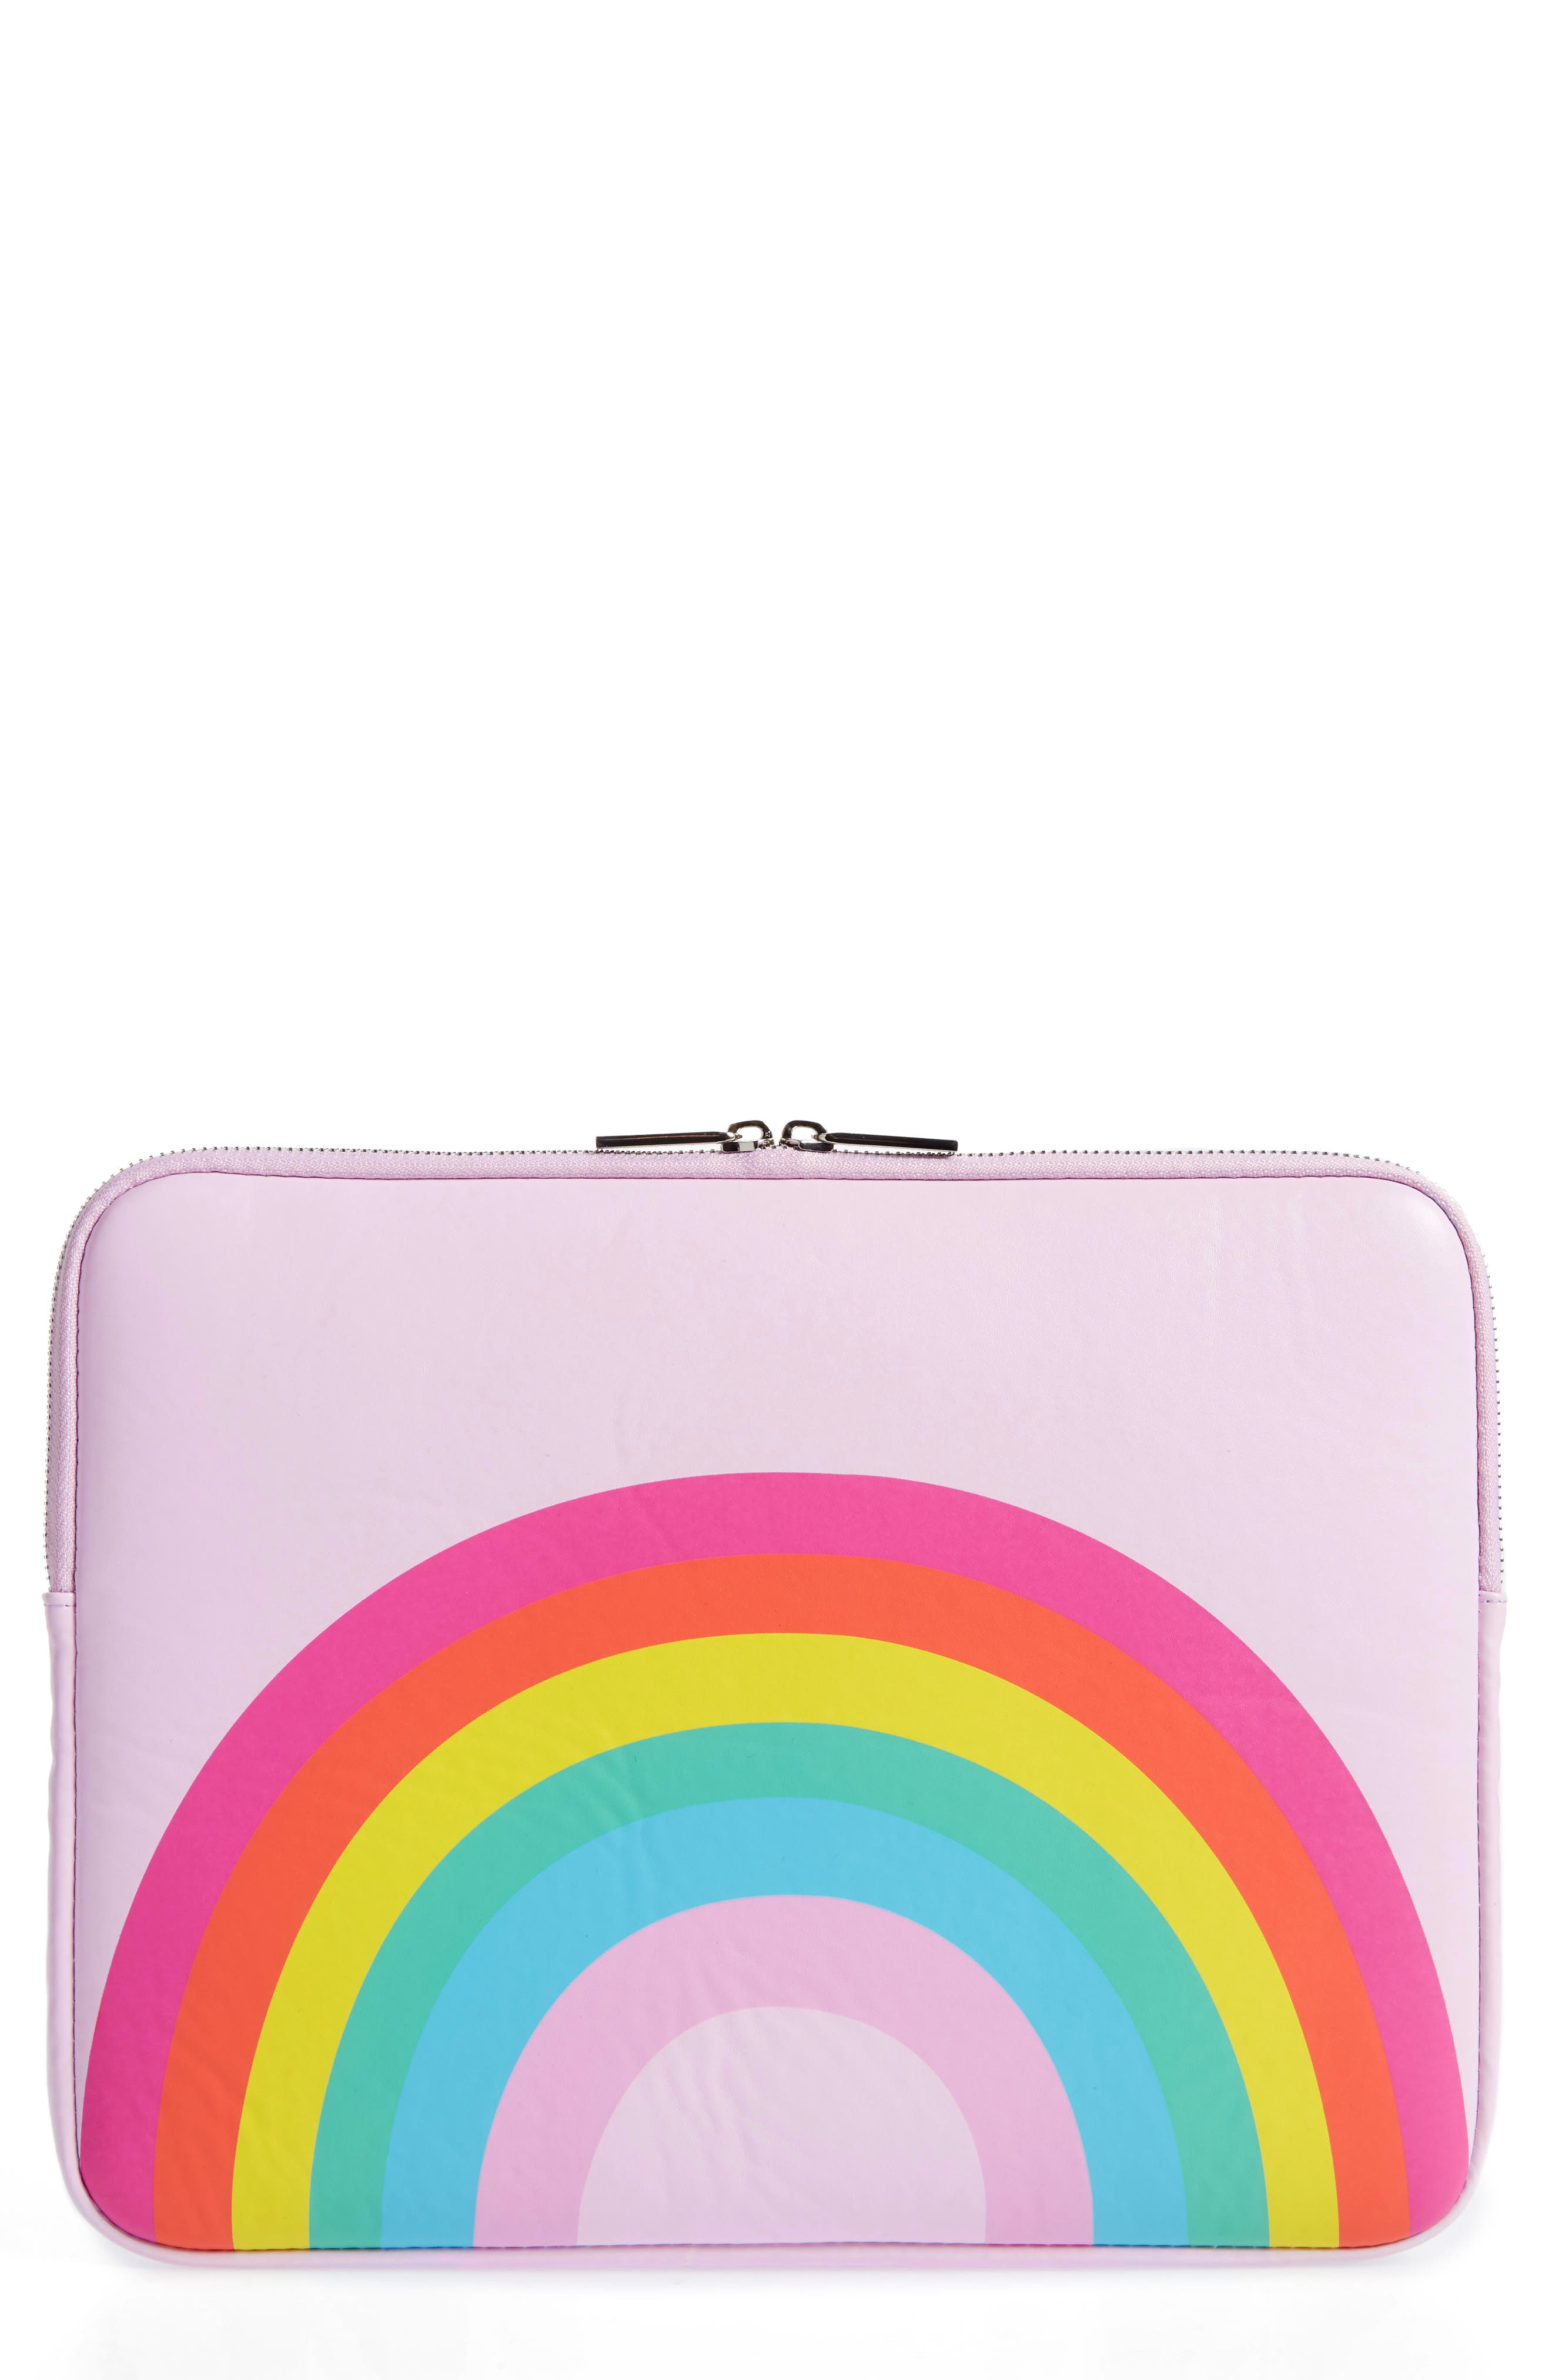 SKINNYDIP Skinny Dip Over the Rainbow 13-Inch Laptop Sleeve